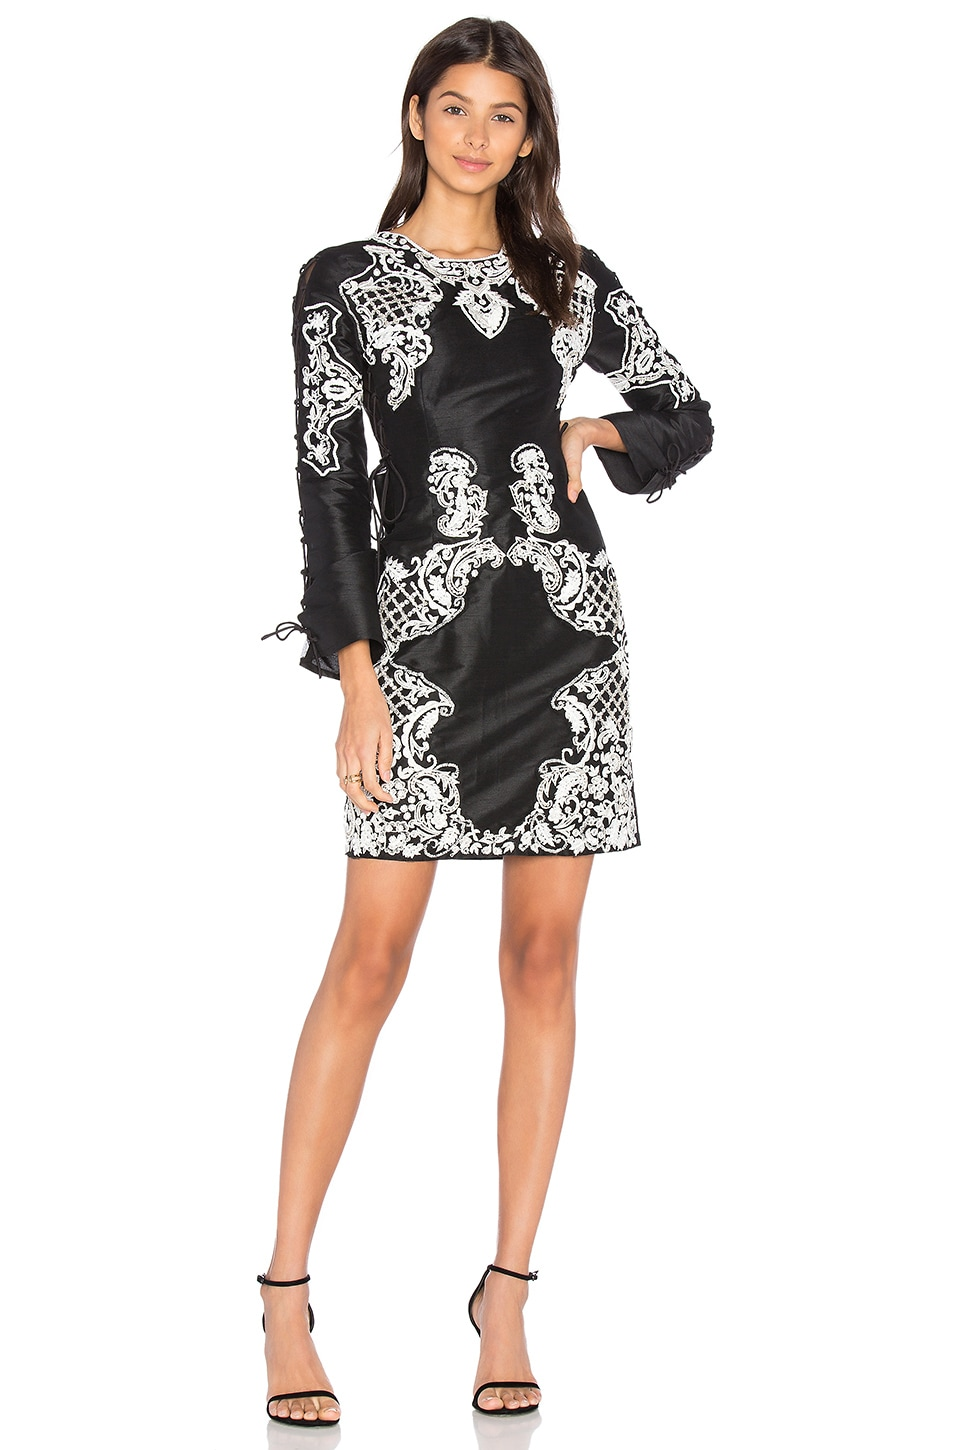 Mirage Dress by THURLEY womens clothes online